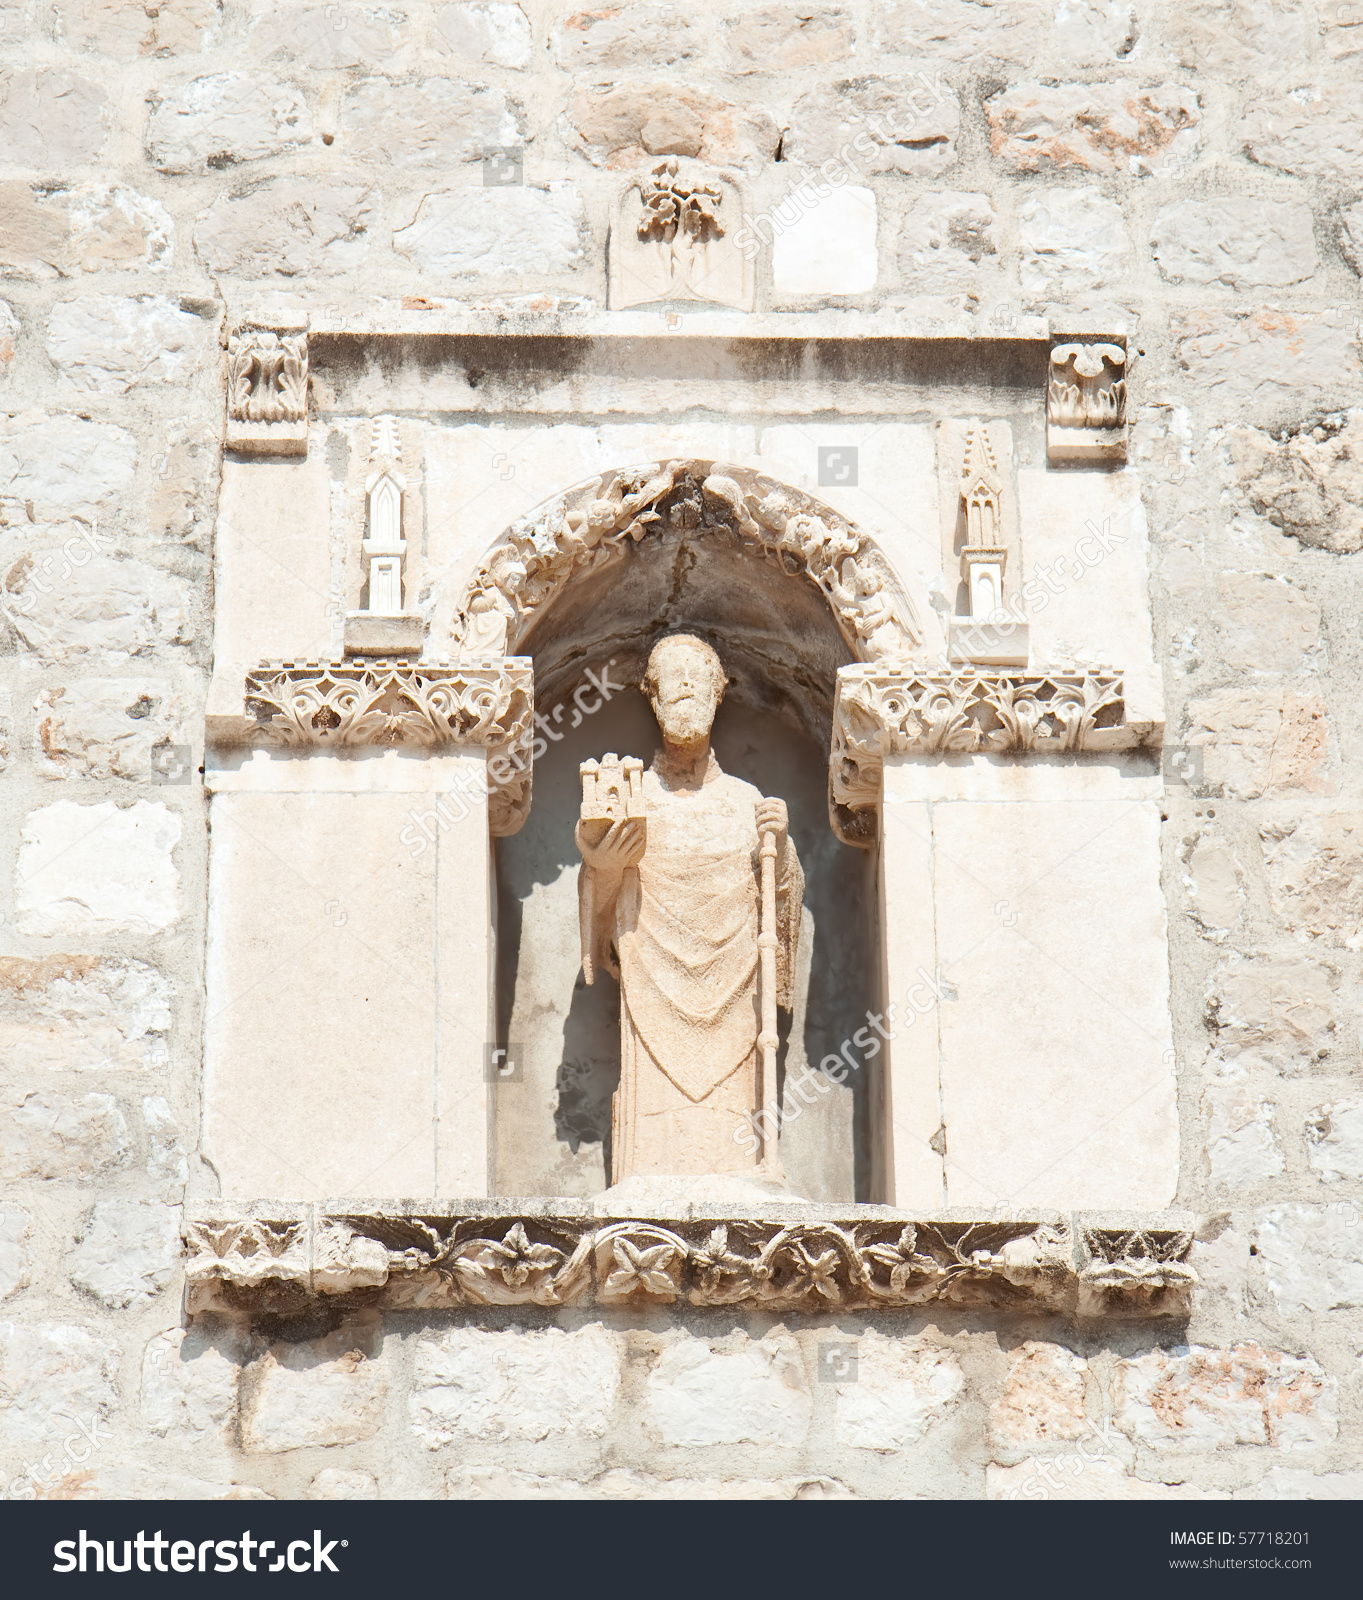 Statue Of St Blasius (Sv. Vlaho) The Protector Of Dubrovnik Placed.